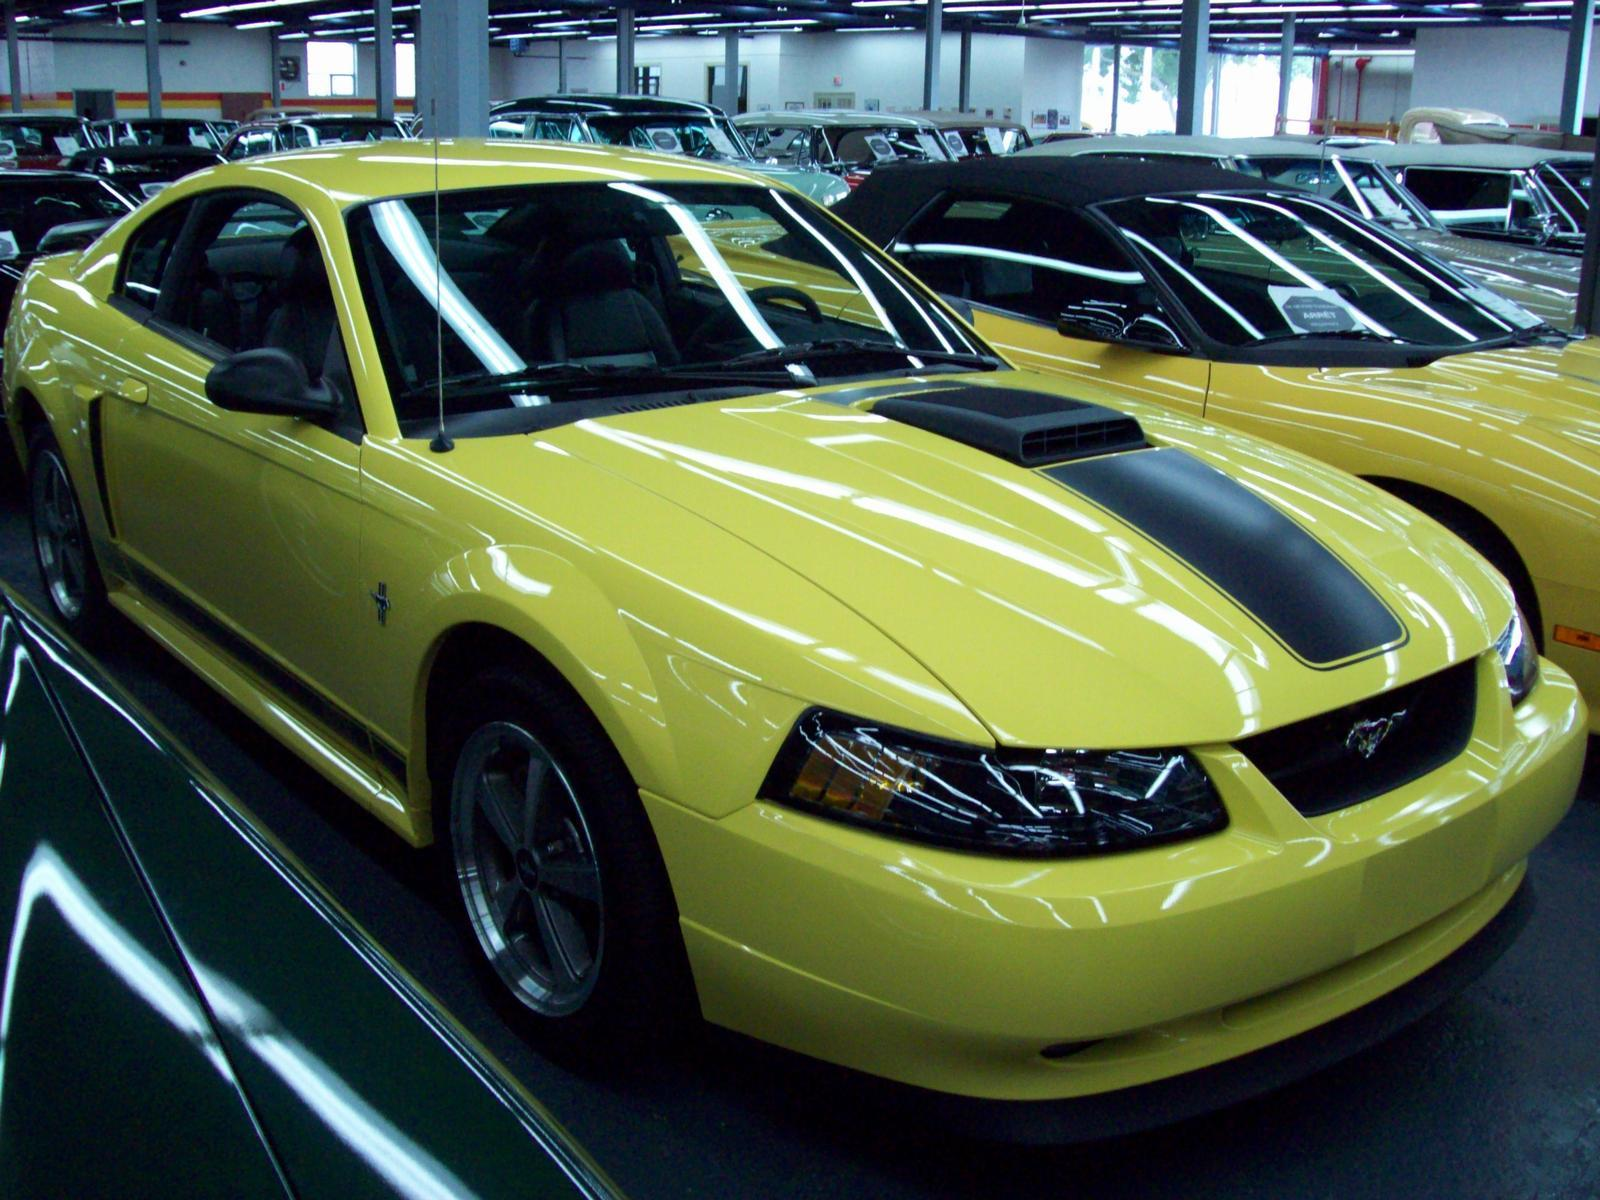 Used  Ford Mustang Mach  For Sale In Saint Leonard John Scotti Classic Cars Hr Y